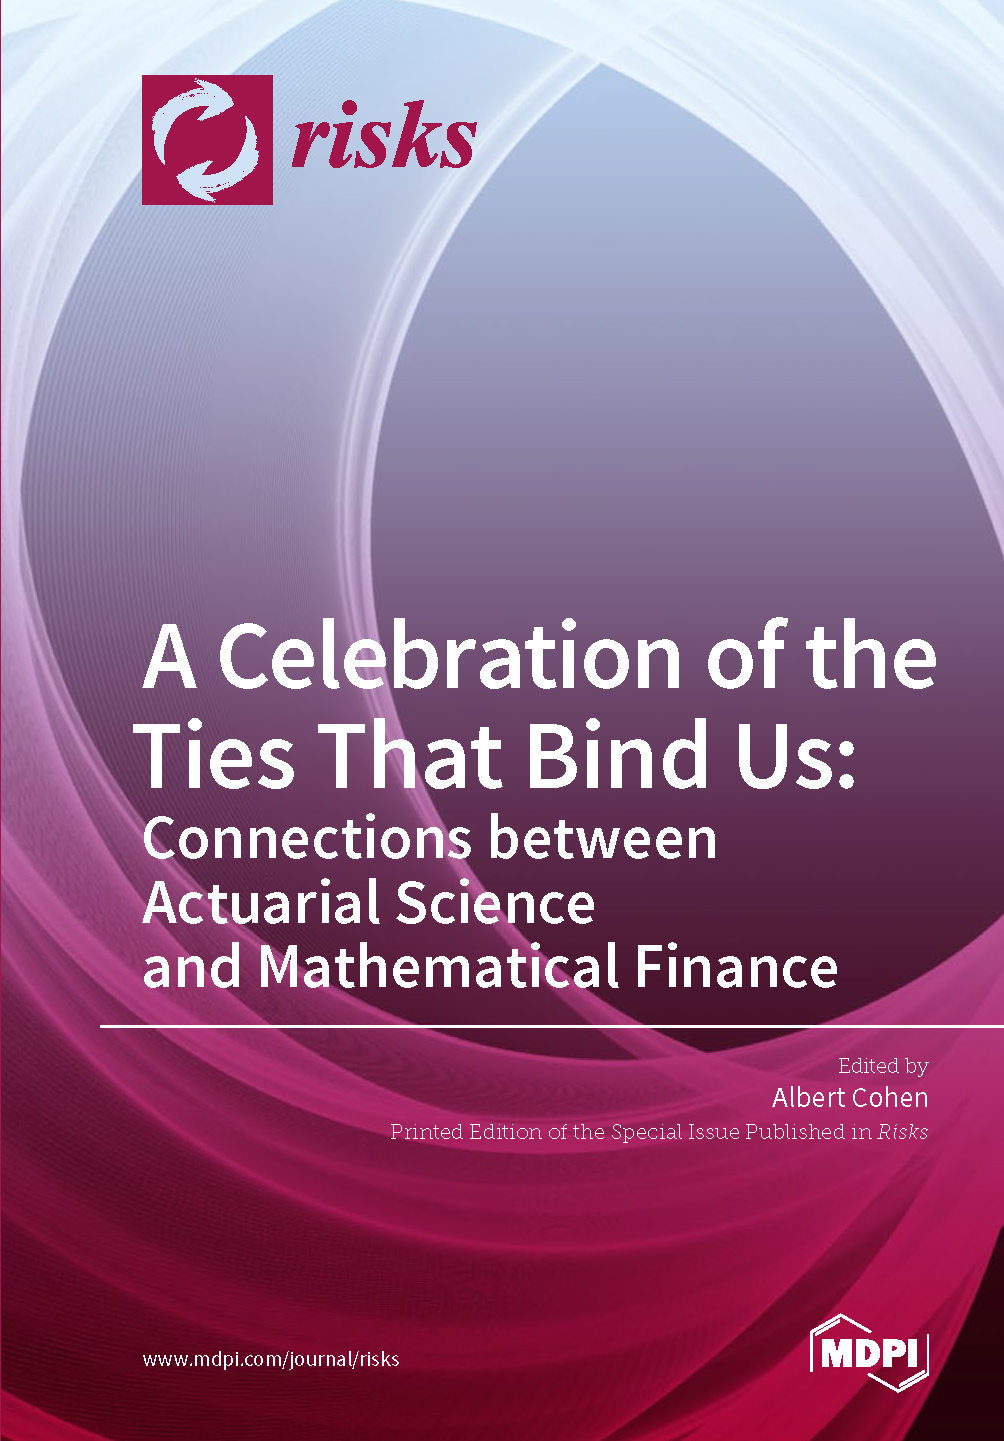 A Celebration of the Ties That Bind Us: Connections between Actuarial Science and Mathematical Finance